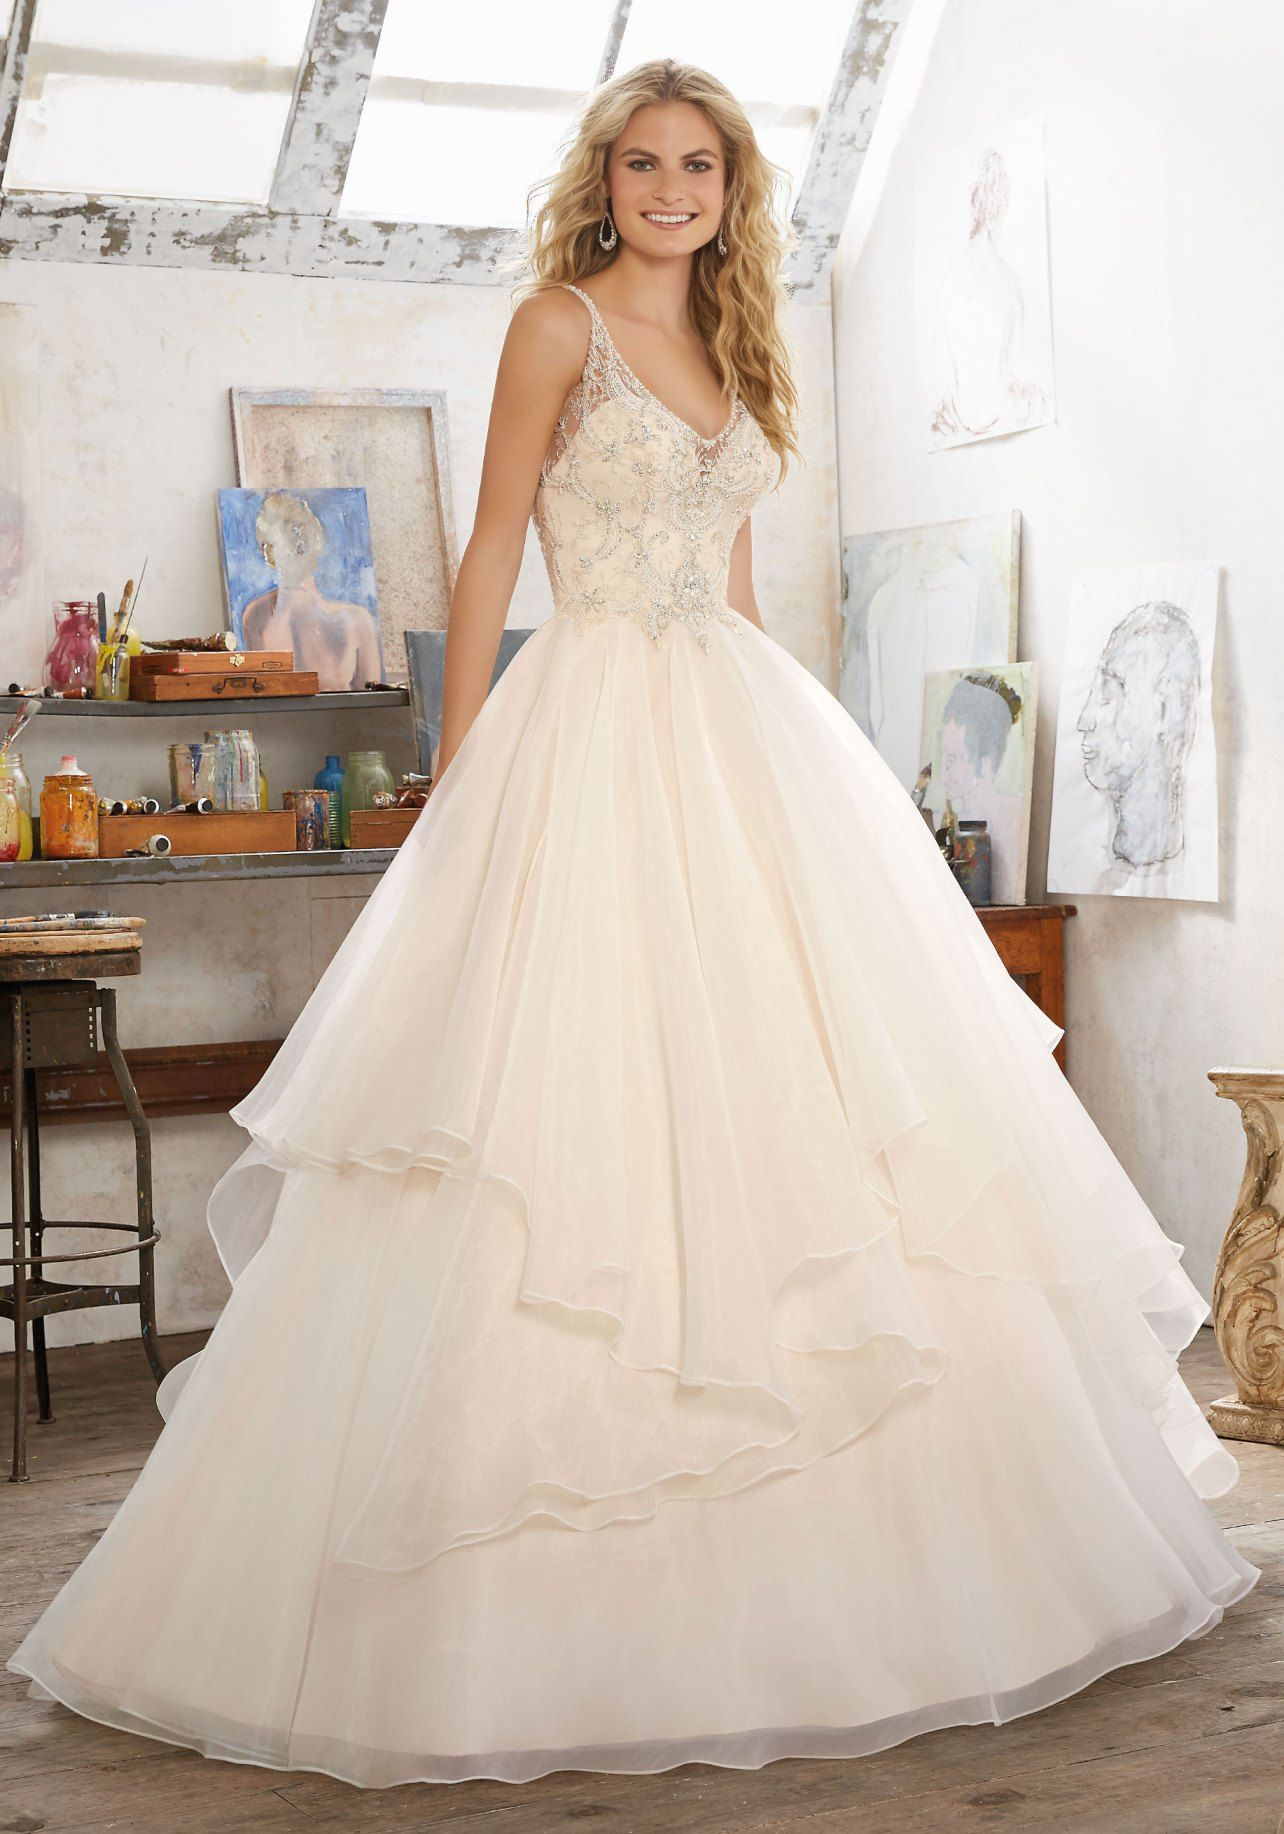 View Dress - Mori Lee Bridal SPRING 2017 Collection: 8105 - Madison - Crystal Beaded Embroidery on Net with Billowy, Flounced Organza Skirt | MoriLee Bridal